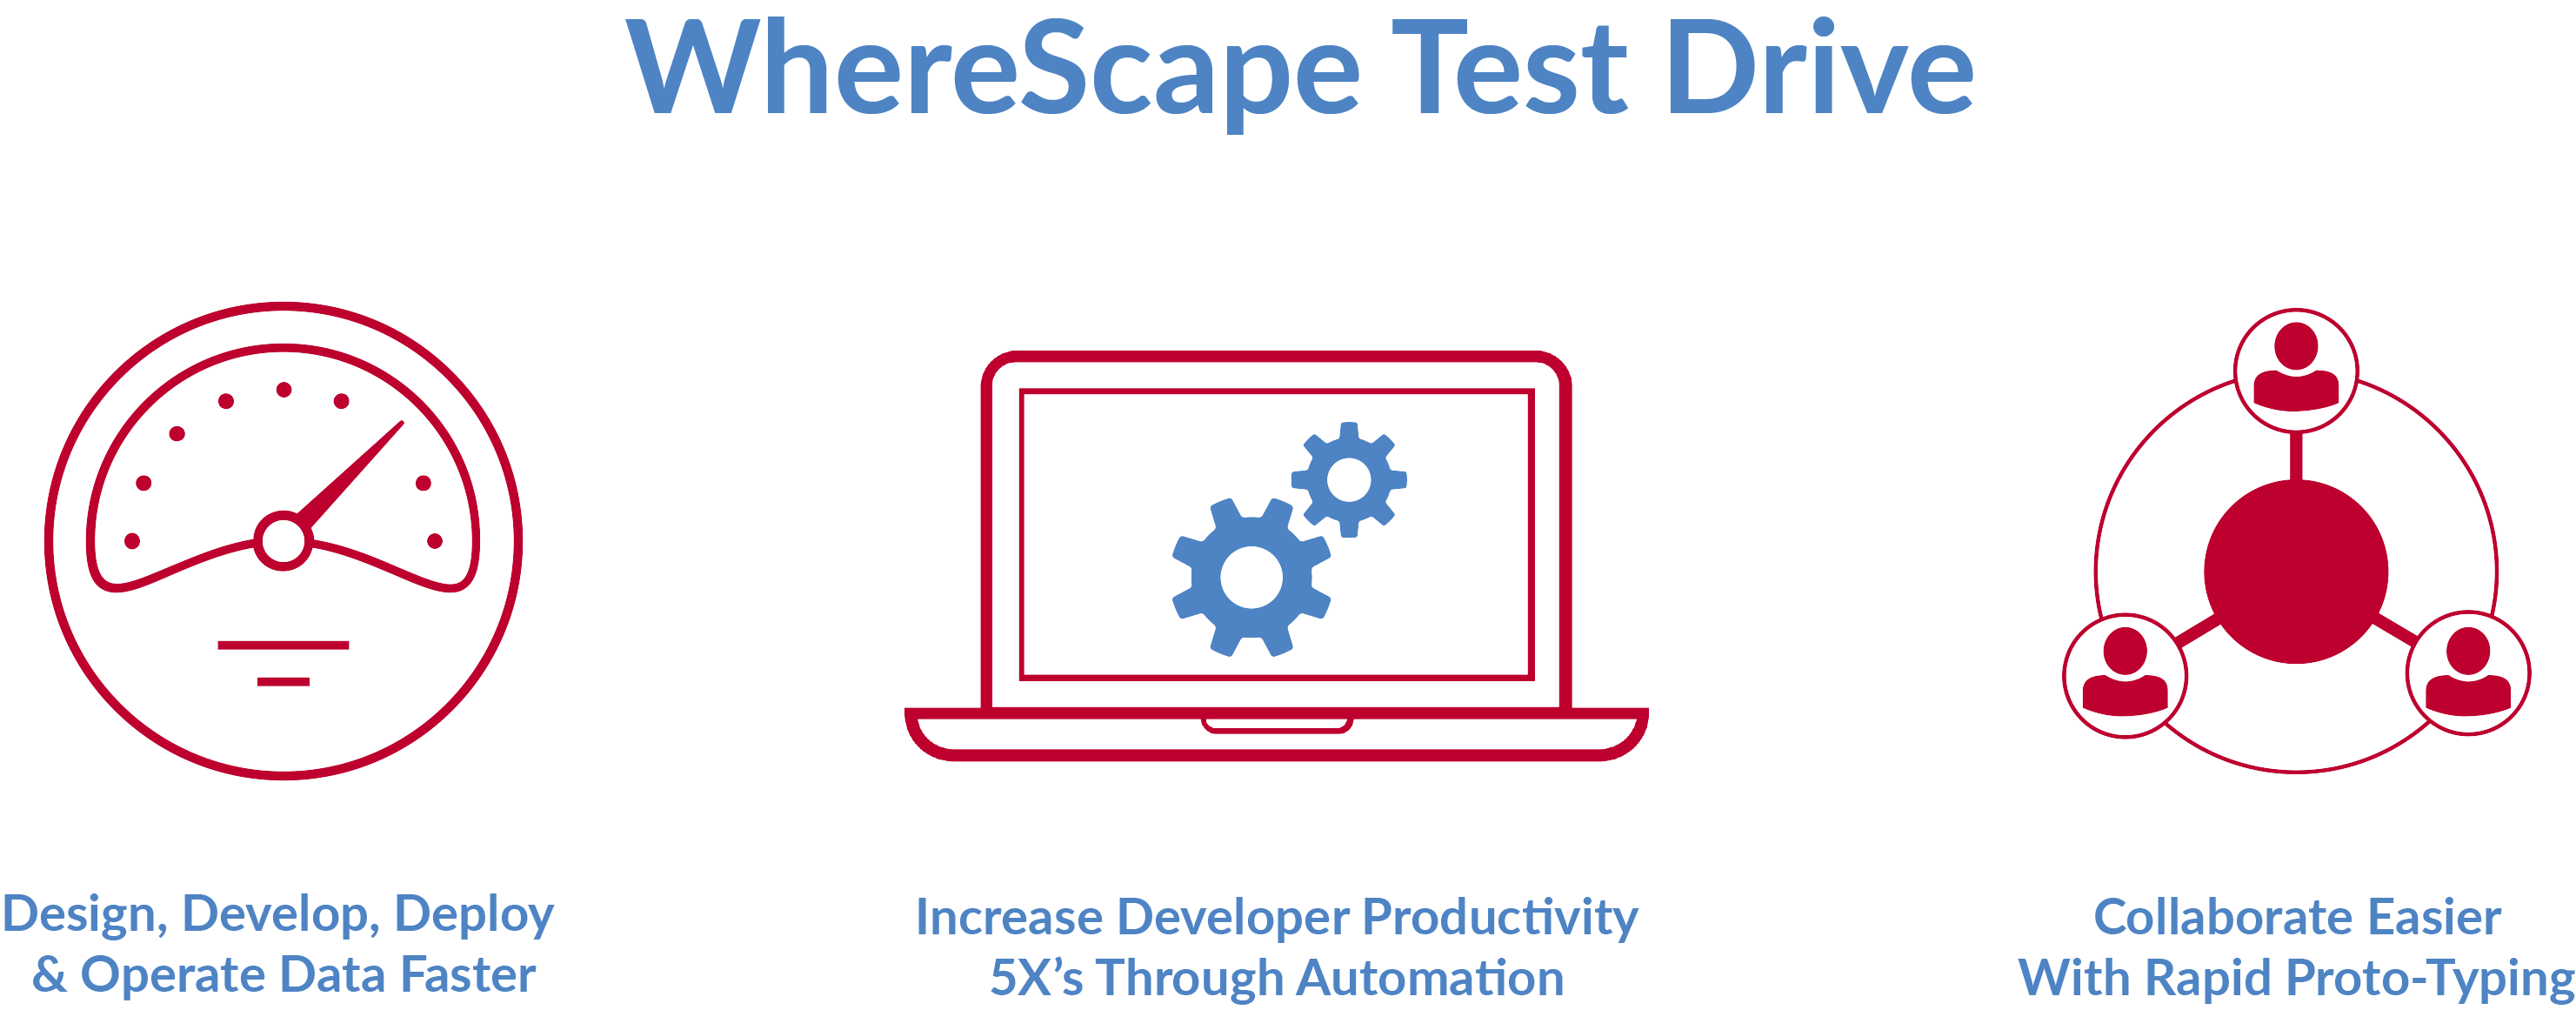 Test Drive: Learn To Build An Automated Data Warehouse On Snowflake in 2.25 Hours-Austin TX